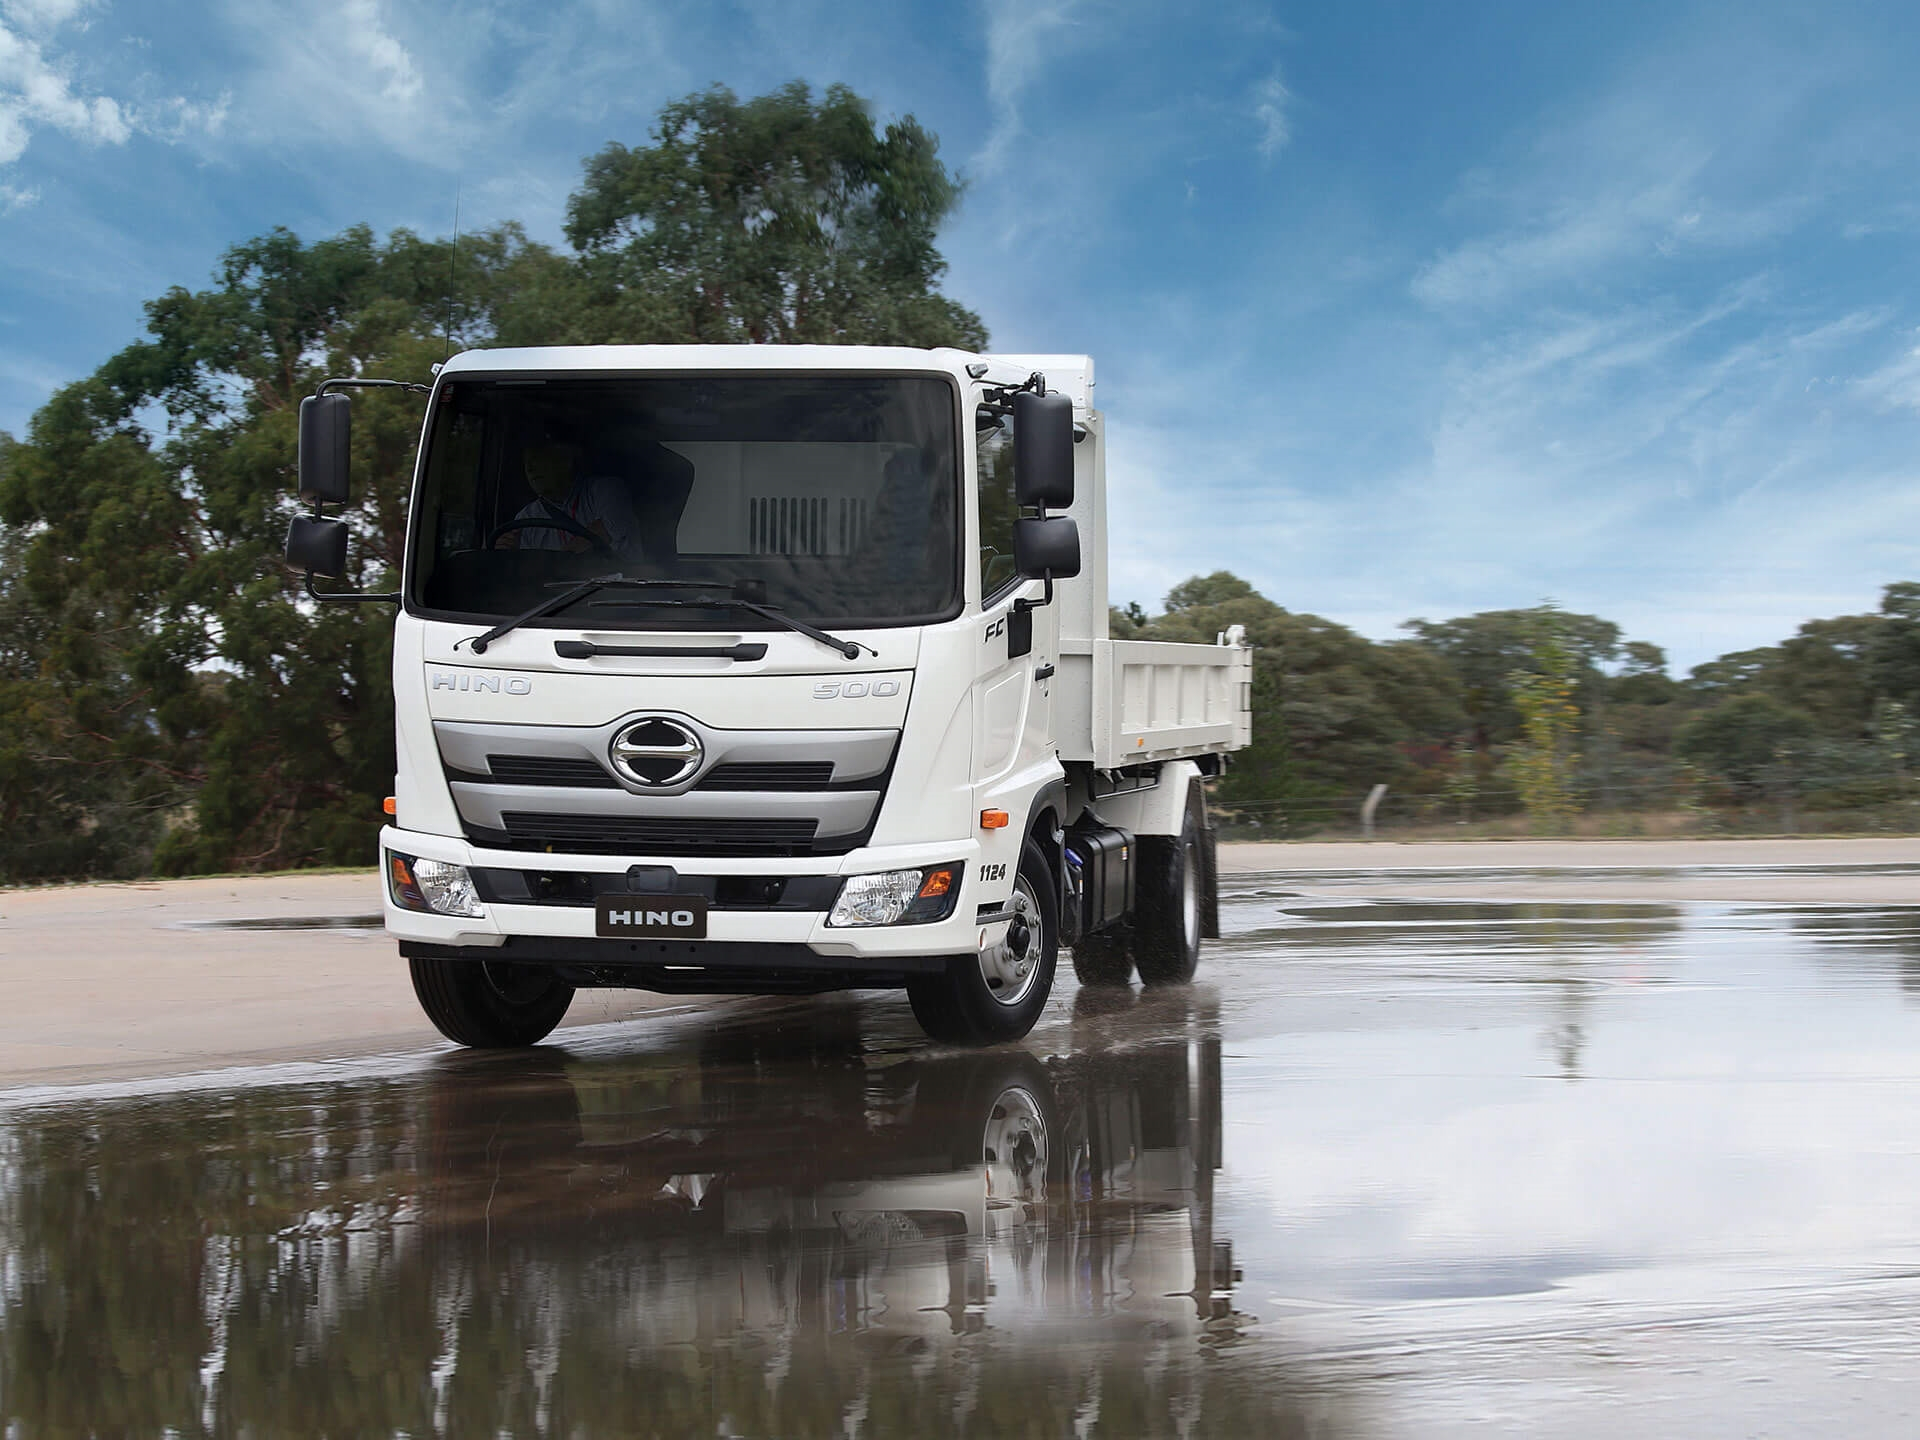 Hino Australia has further expanded its range of Built to Go (BTG) trucks with the introduction of the new Tipper Pro variants in both the popular 300 Series and 500 Series model range